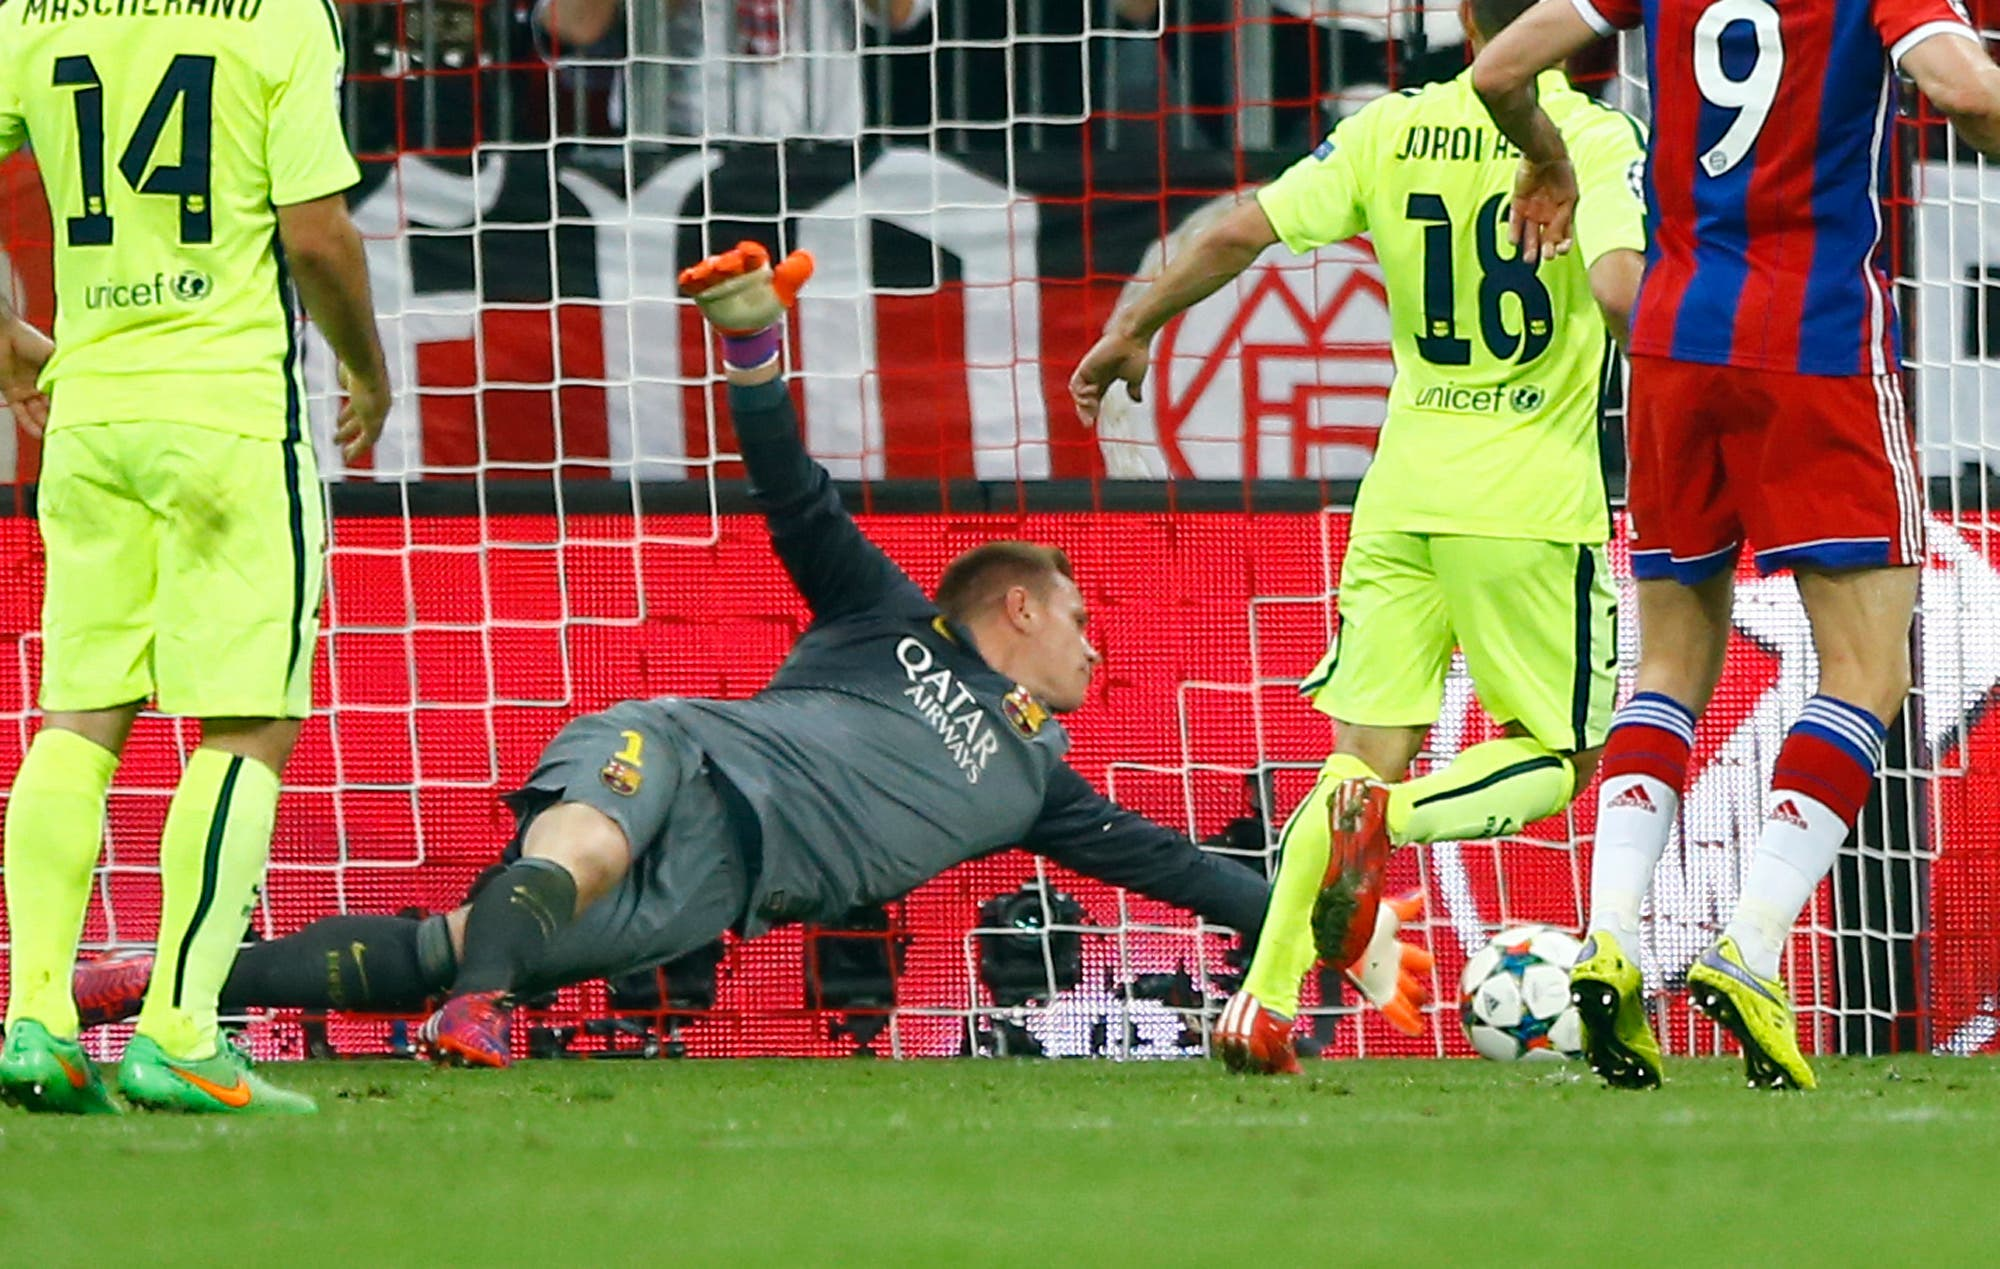 Barcelona's goalkeeper Marc-Andre ter Stegen makes a save during the soccer Champions League second leg semifinal match between Bayern Munich and FC Barcelona at Allianz Arena in Munich, southern Germany, Tuesday, May 12, 2015. (AP)